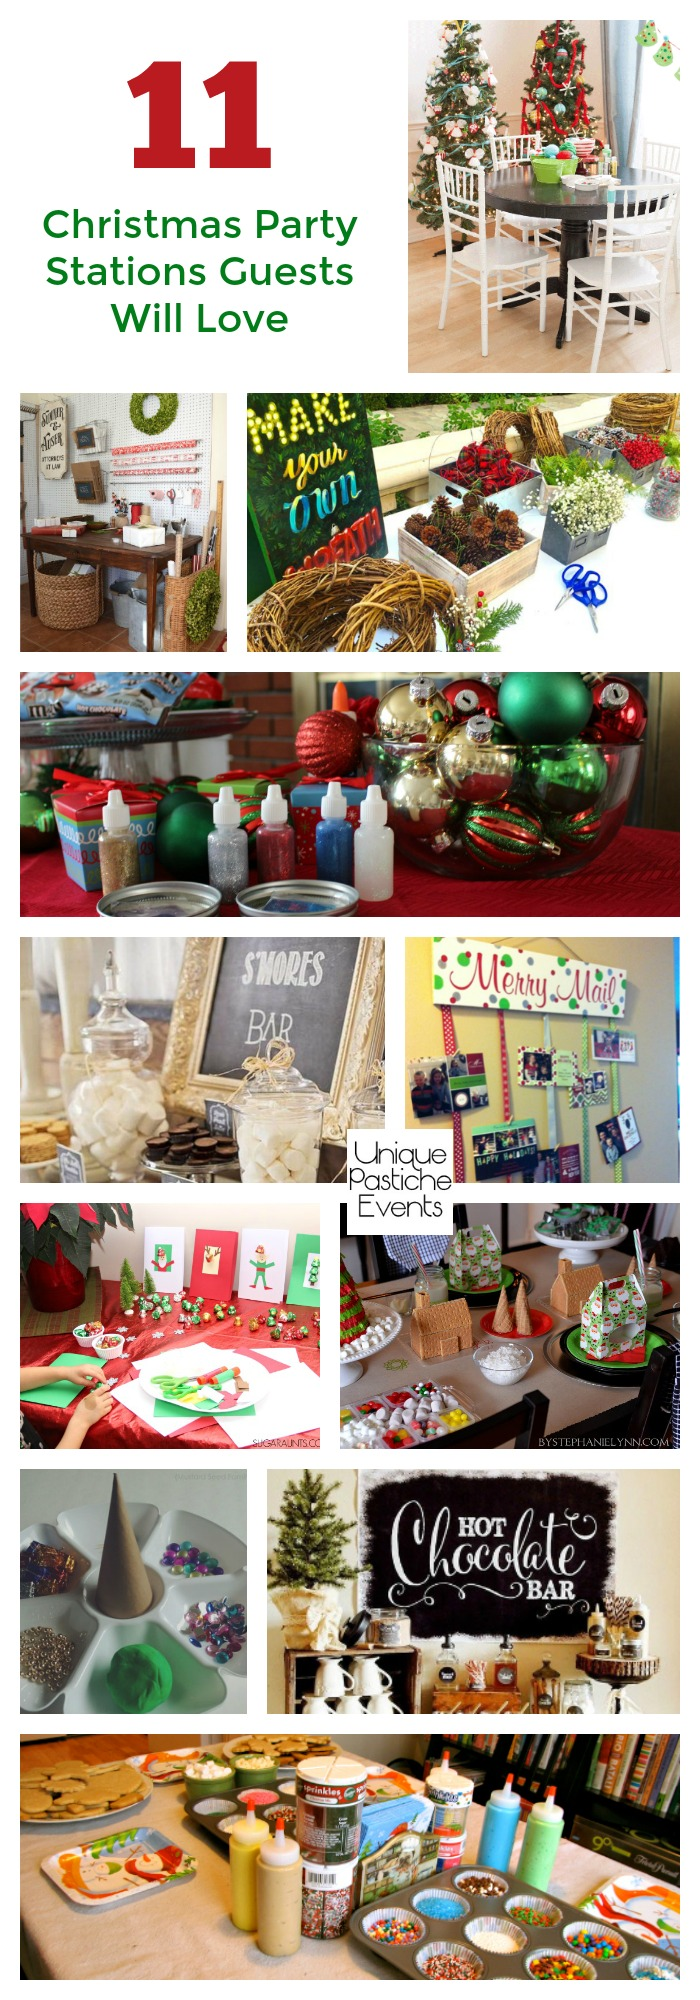 11 Christmas Party Stations Guests Will Love Get all the ideas to save for next year here: https://uniquepasticheevents.com/2016/11/23/11-christmas-party-stations-guests-will-love/